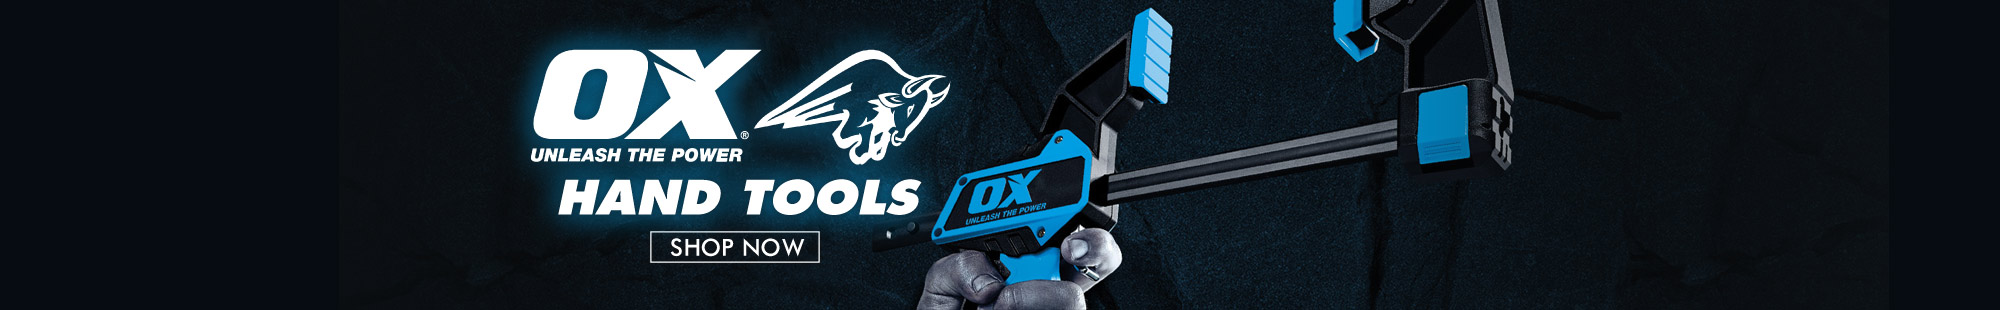 OX Hand Tools